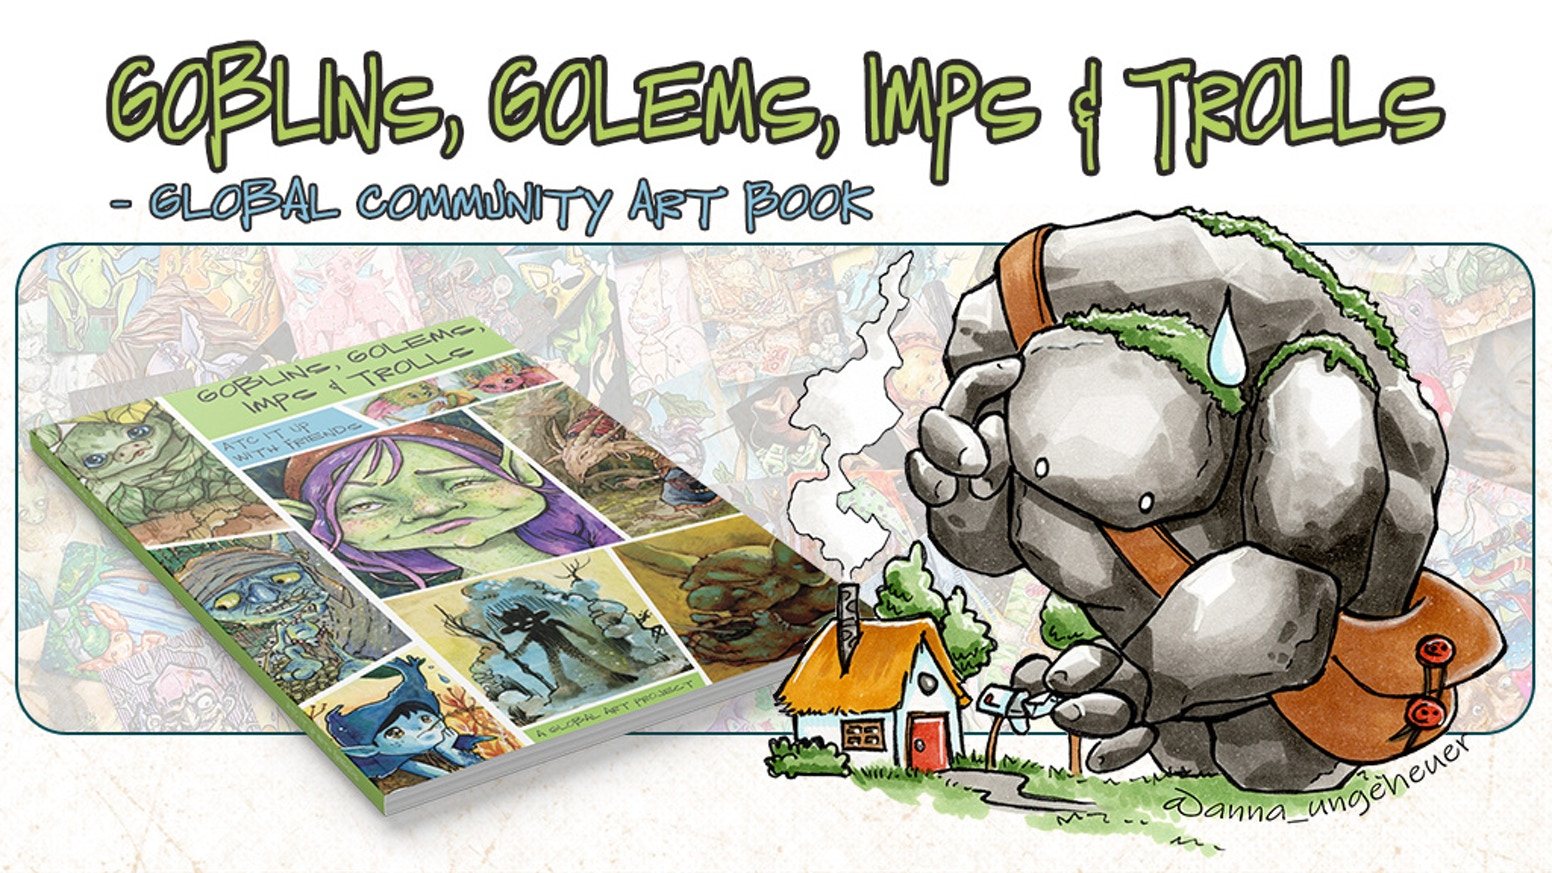 Goblins, Golems, Imps & Trolls is a wonderful collection of original illustrations from over 100 artists world wide.